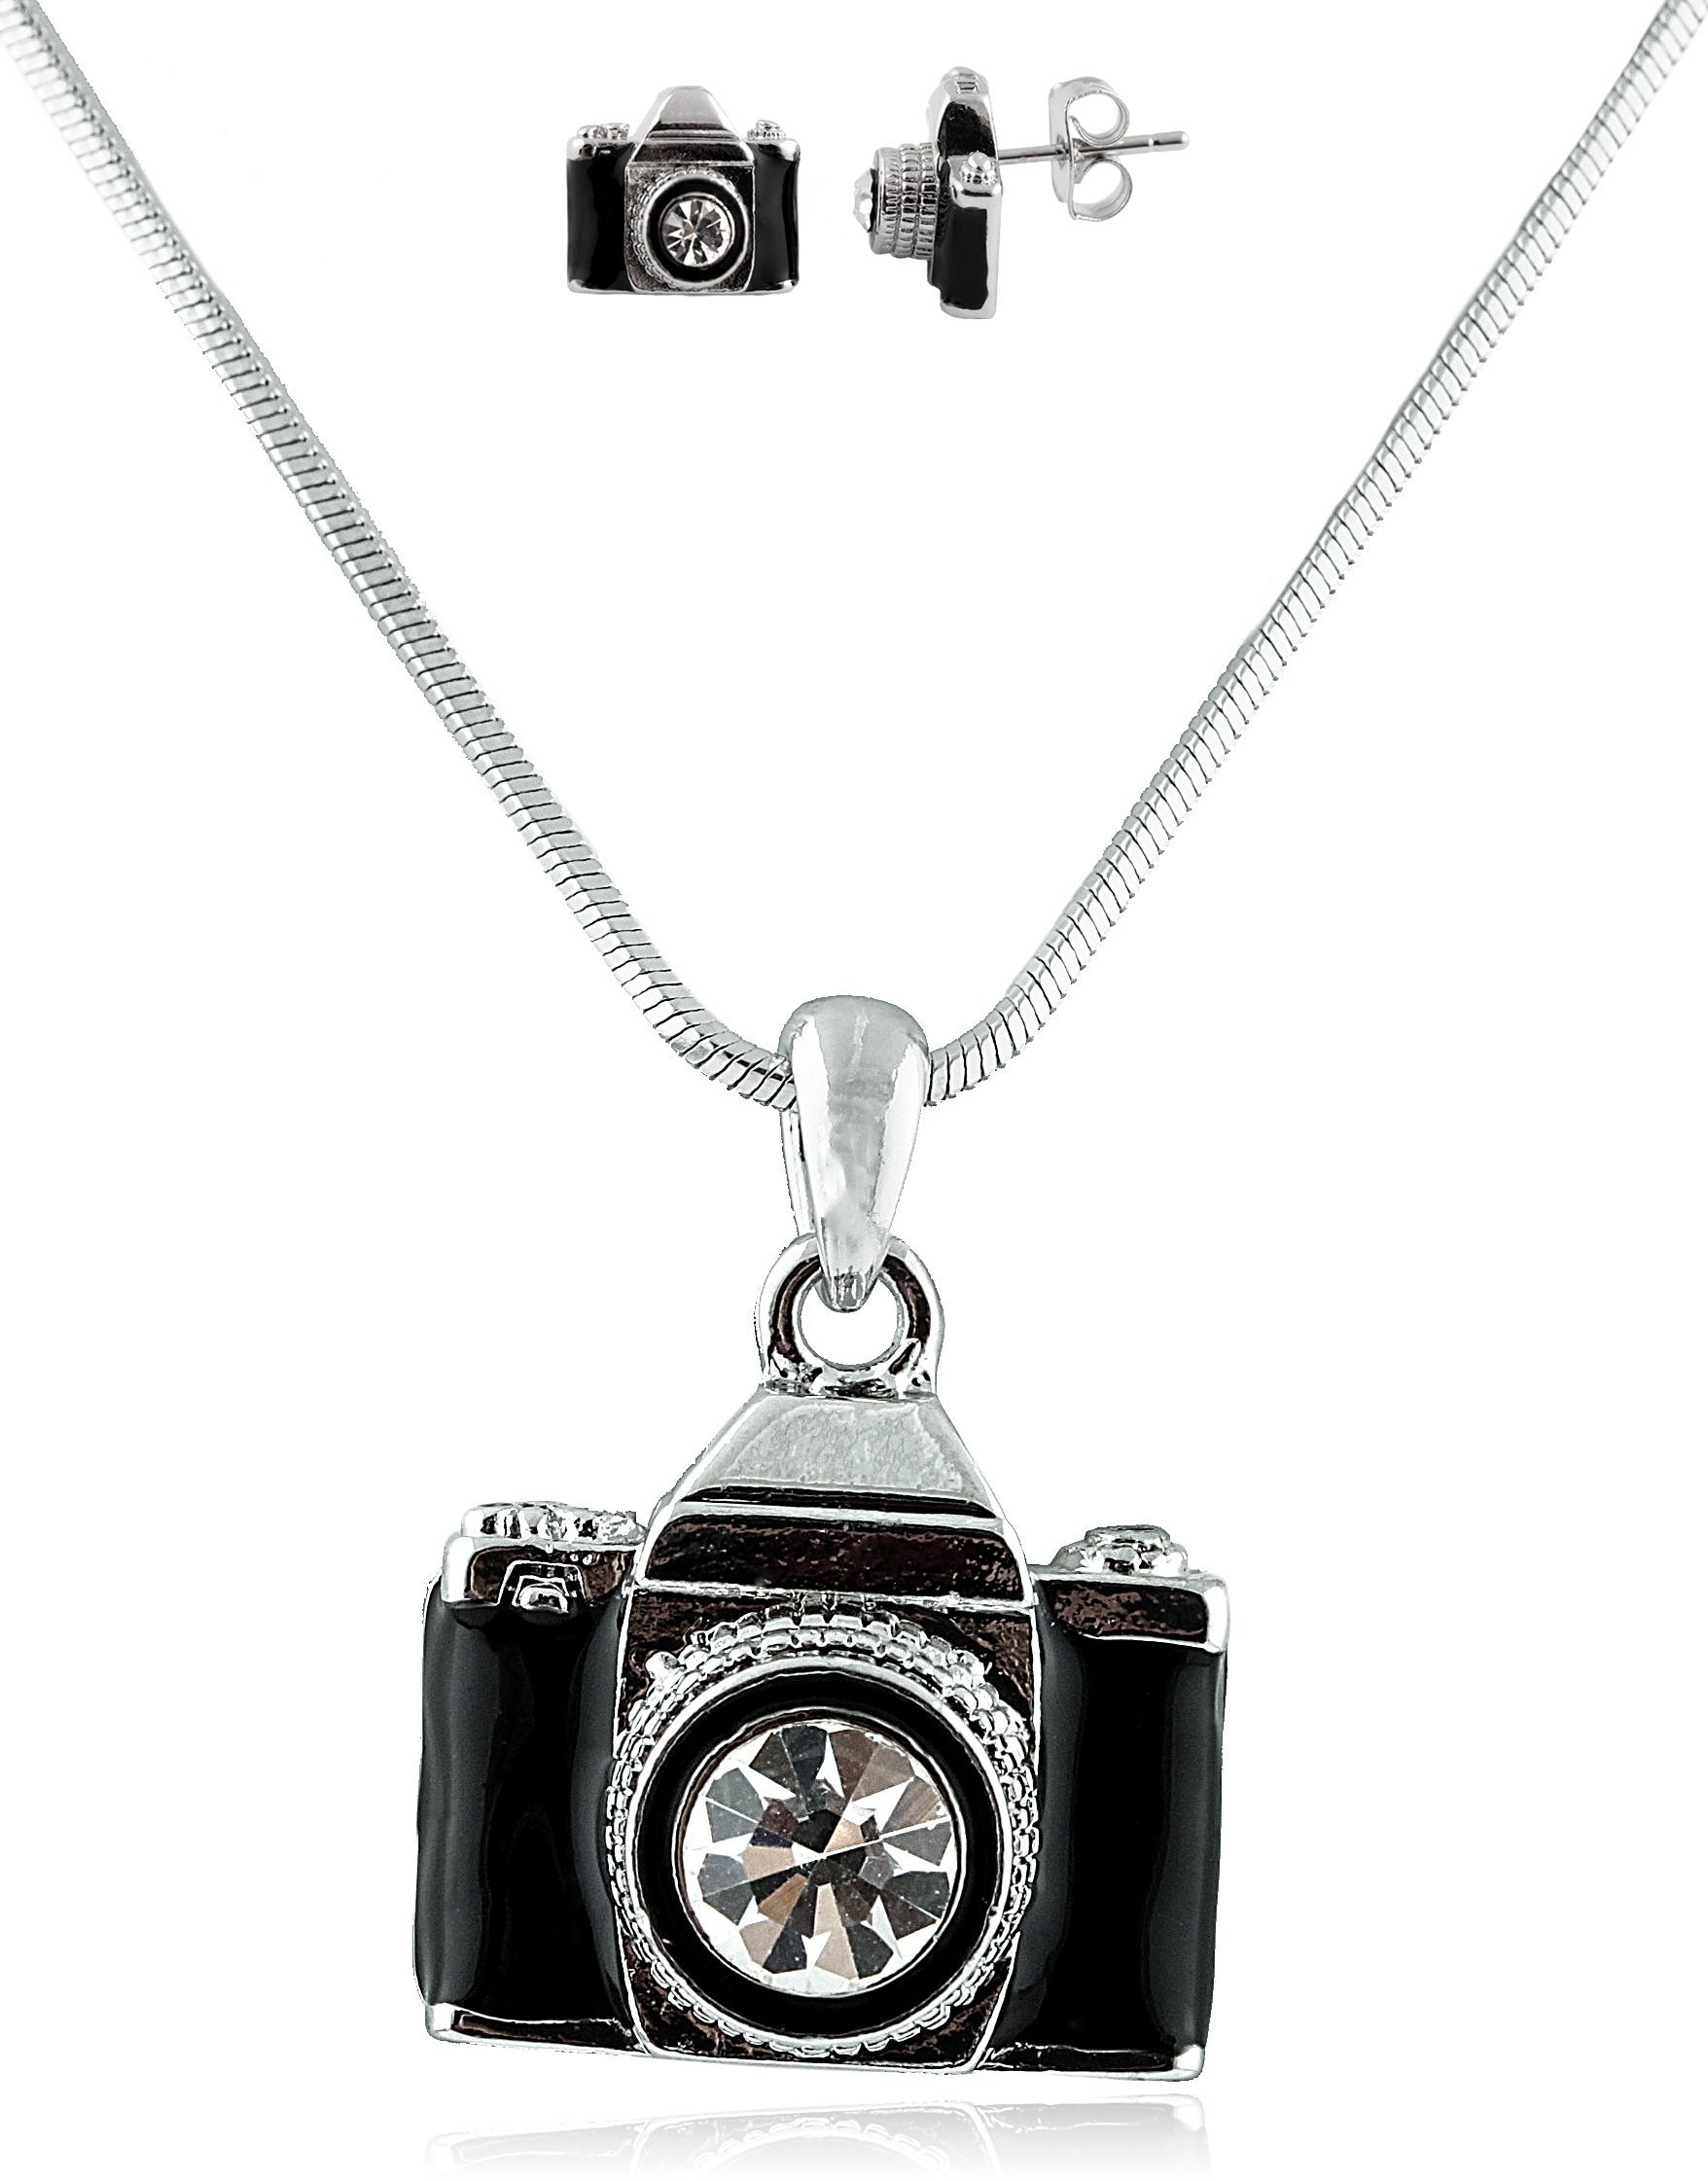 Combo of Silvertone with Black Camera Style Pendant Necklace and Matching Earring...